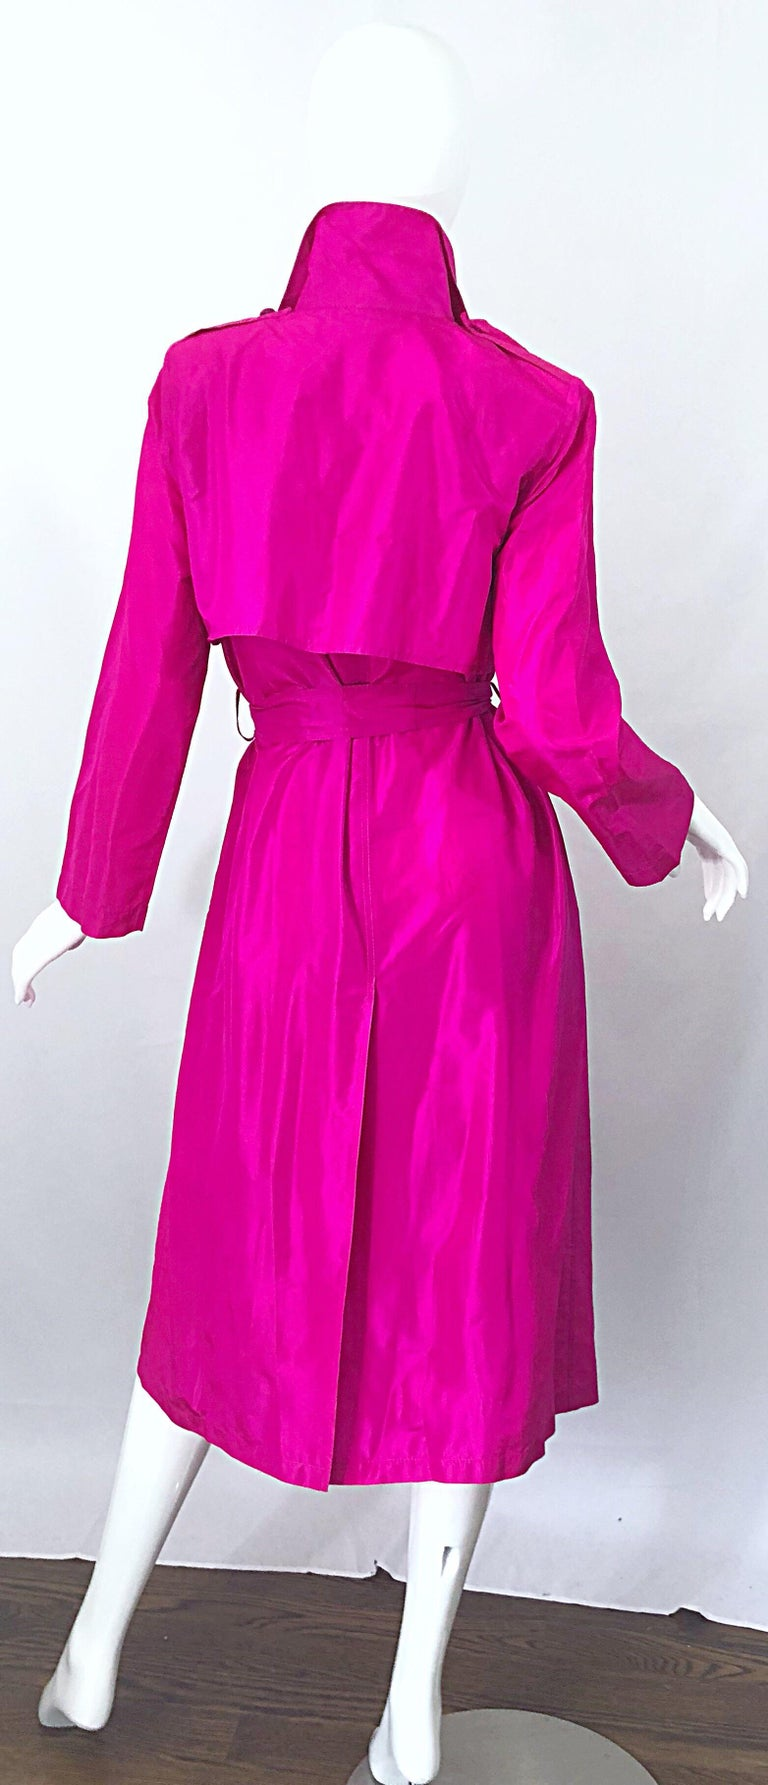 Women's Vintage Vicky Tiel Couture 80s Hot Pink Fuchsia Silk 1980s Trecnch Jacket Dress For Sale